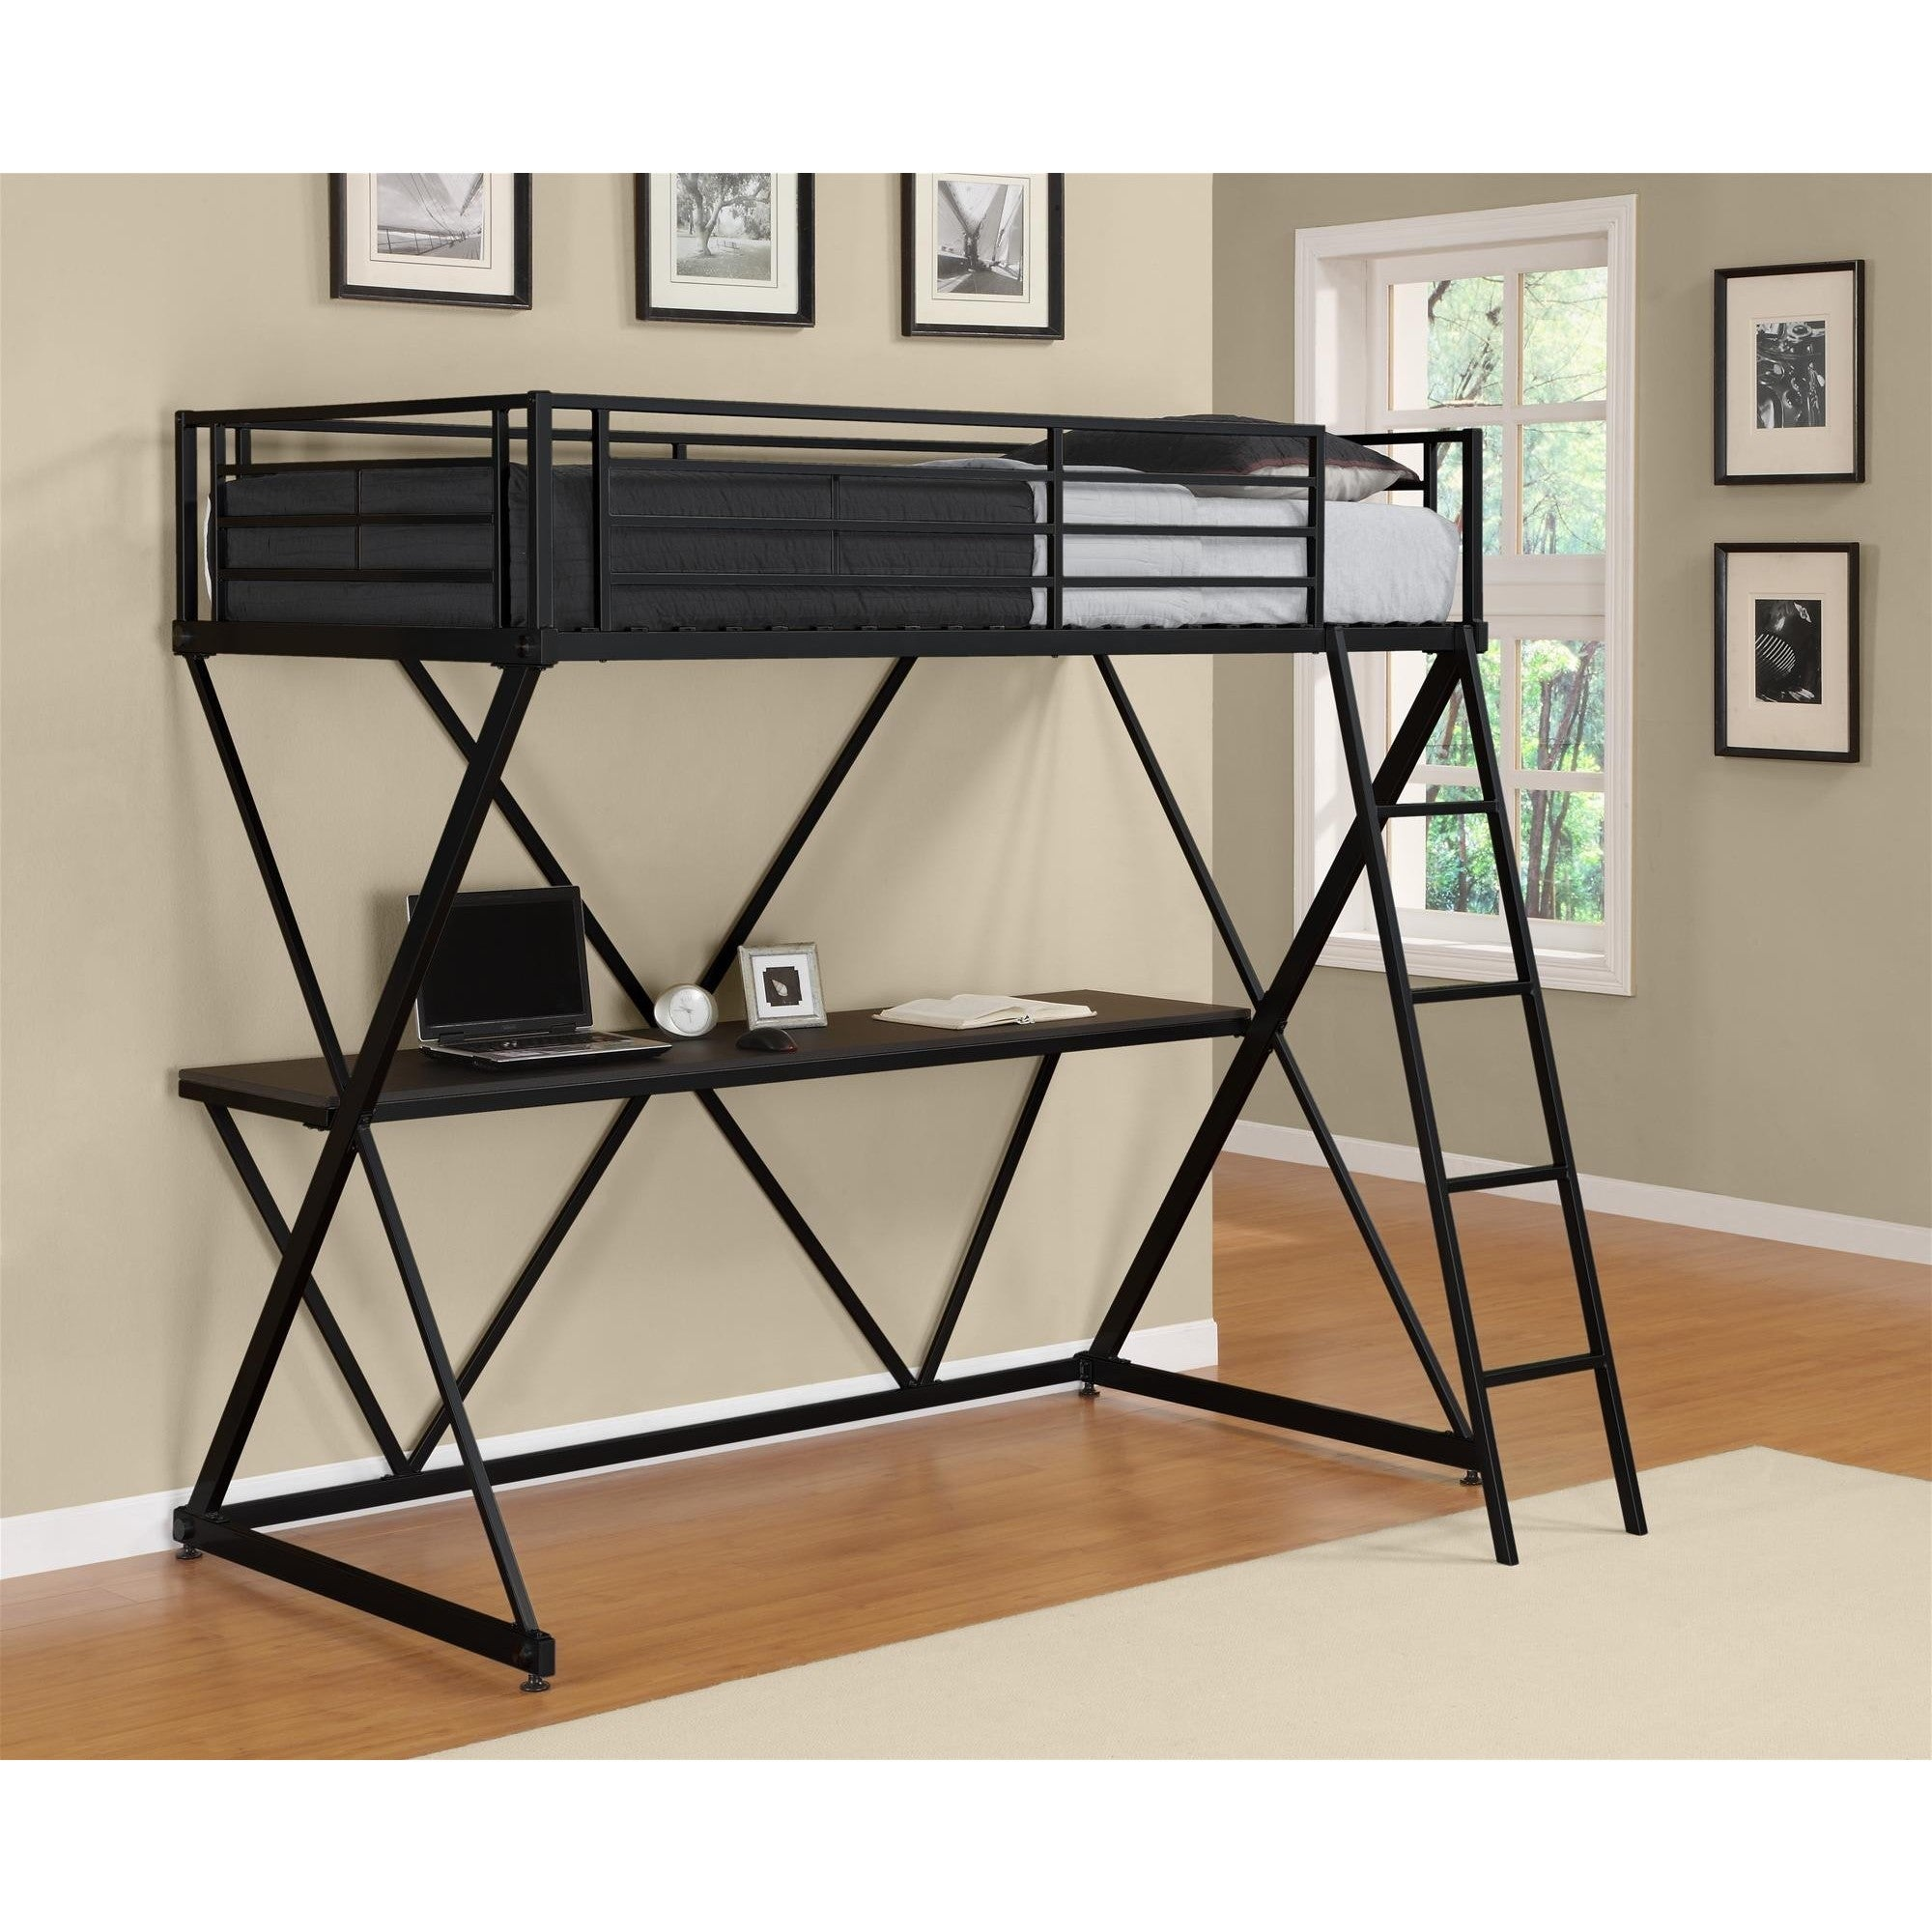 twin walker loft beds hdtsqtolcr bed edison bentley p furniture bunk company metal coral